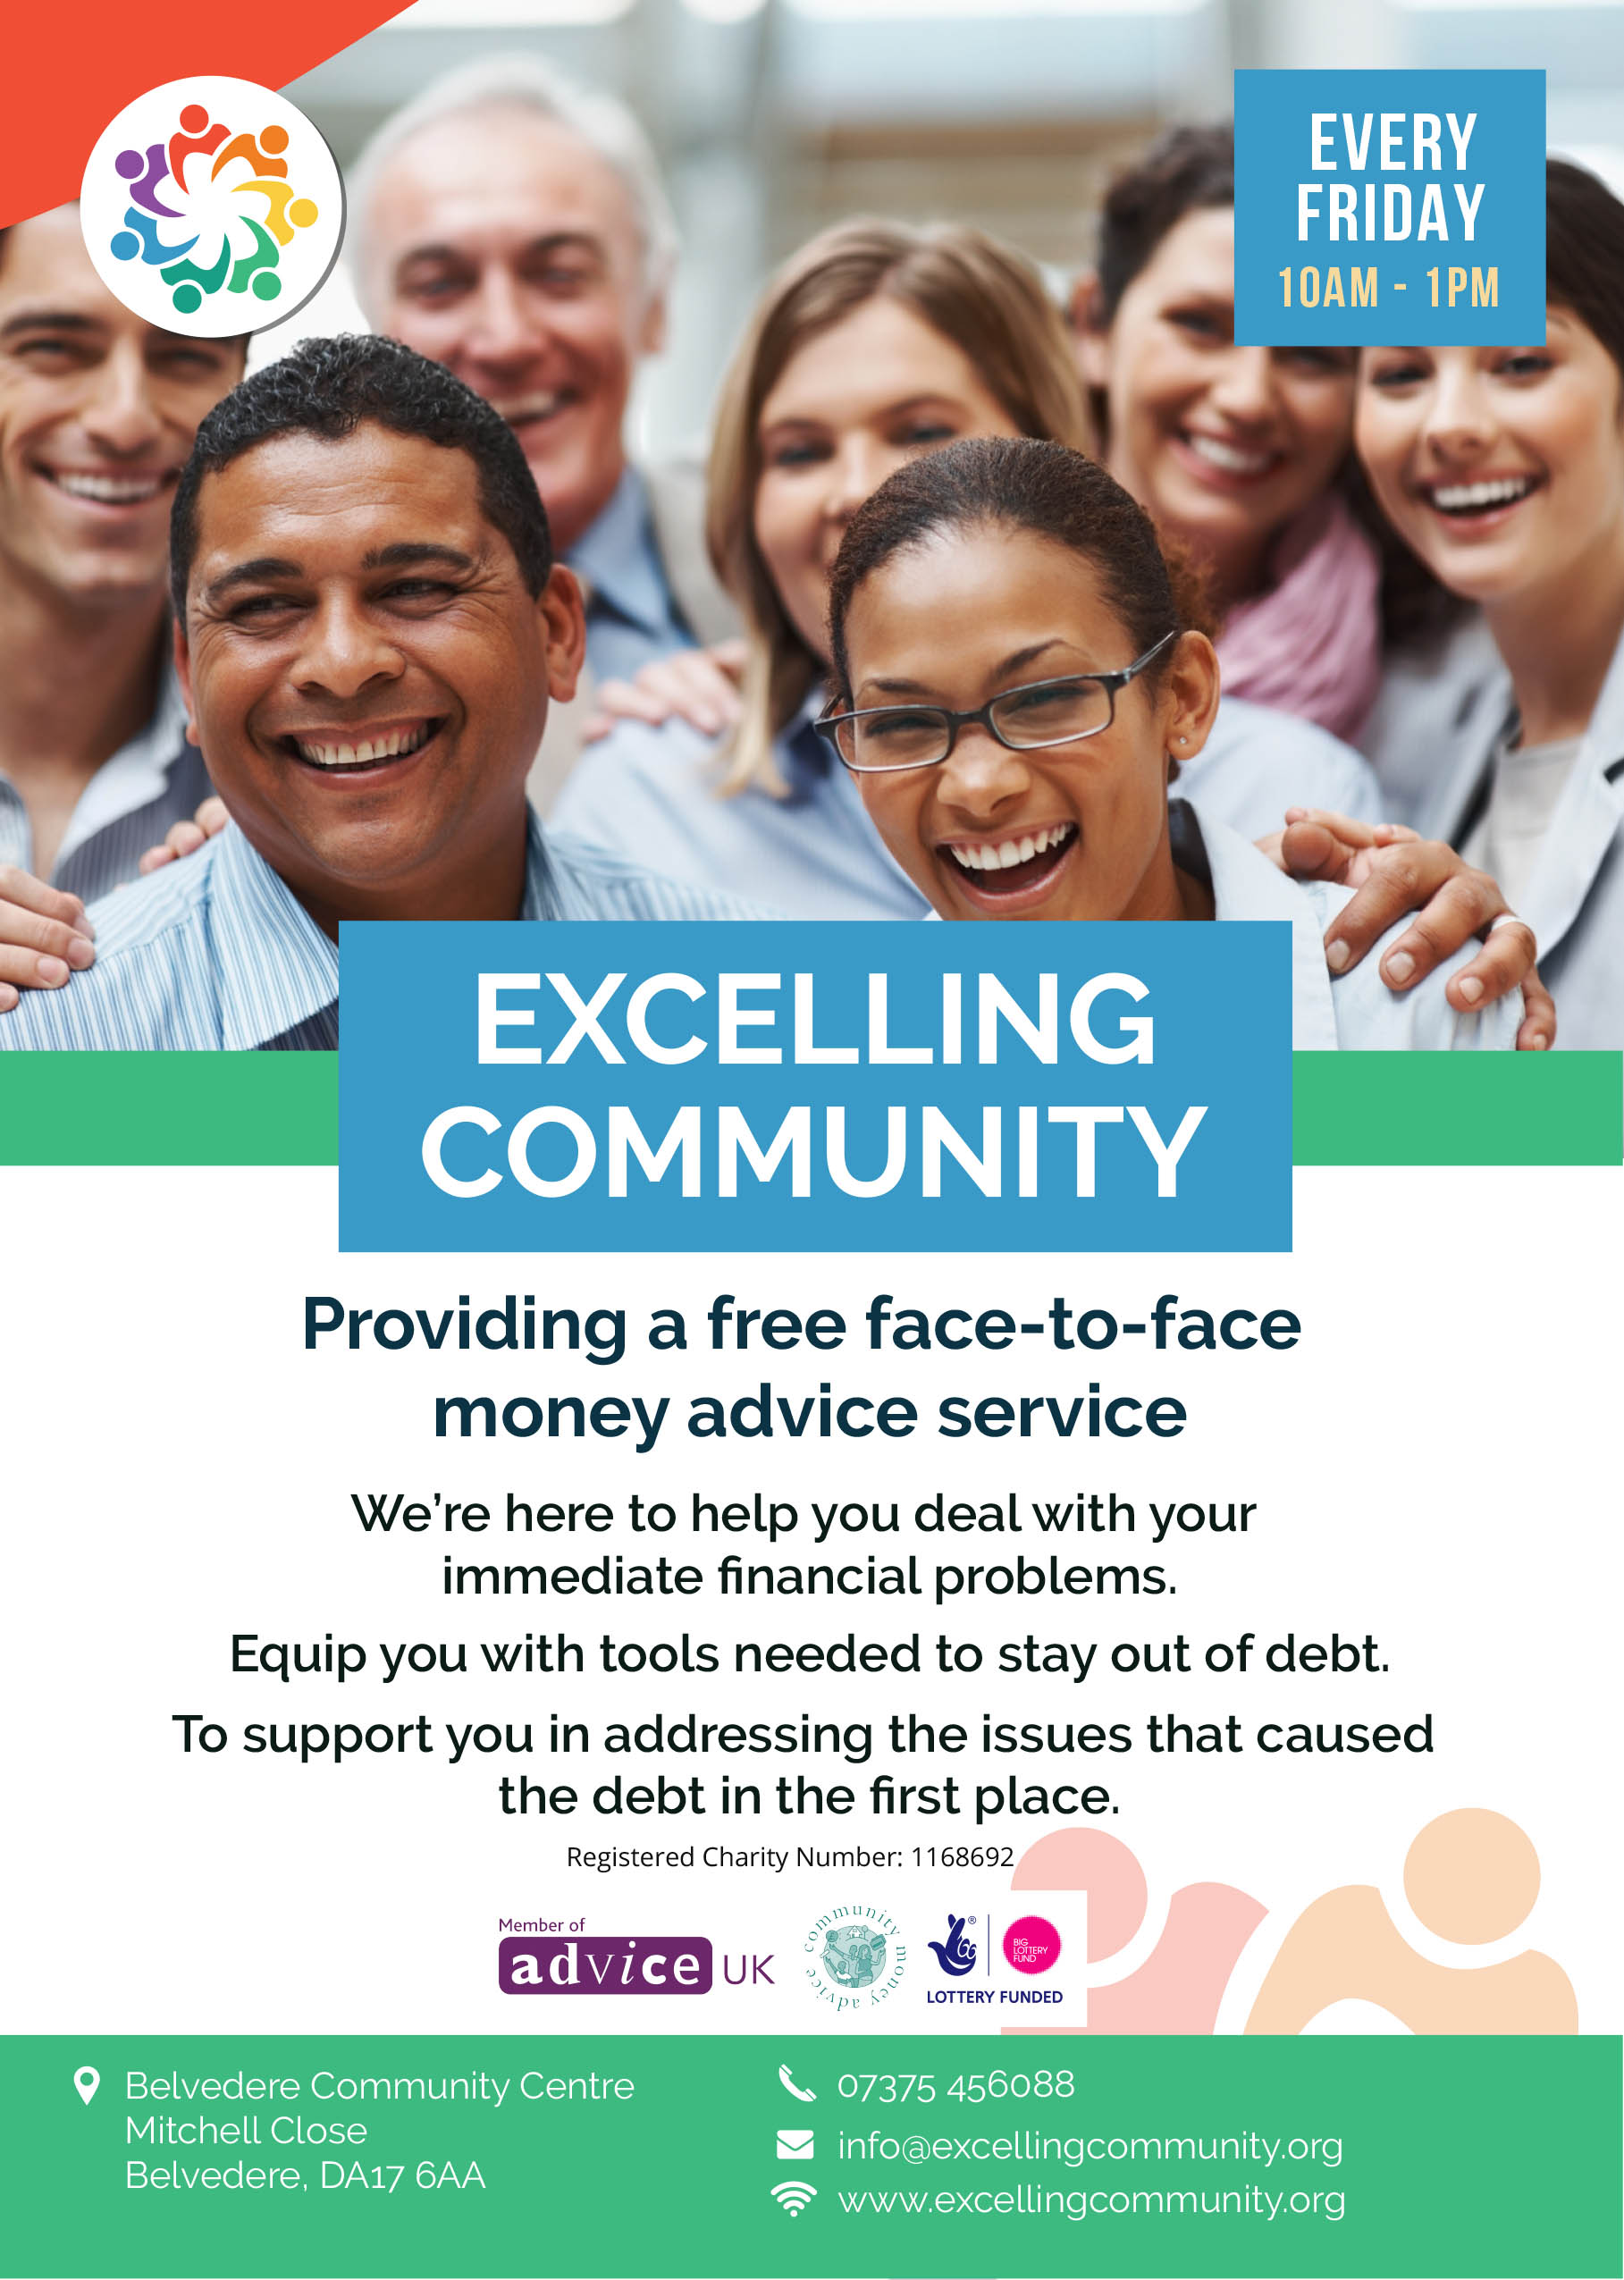 excelling community we work trained advisers to provide a logical step by step process to assess your available options acting your best interests at heart at all